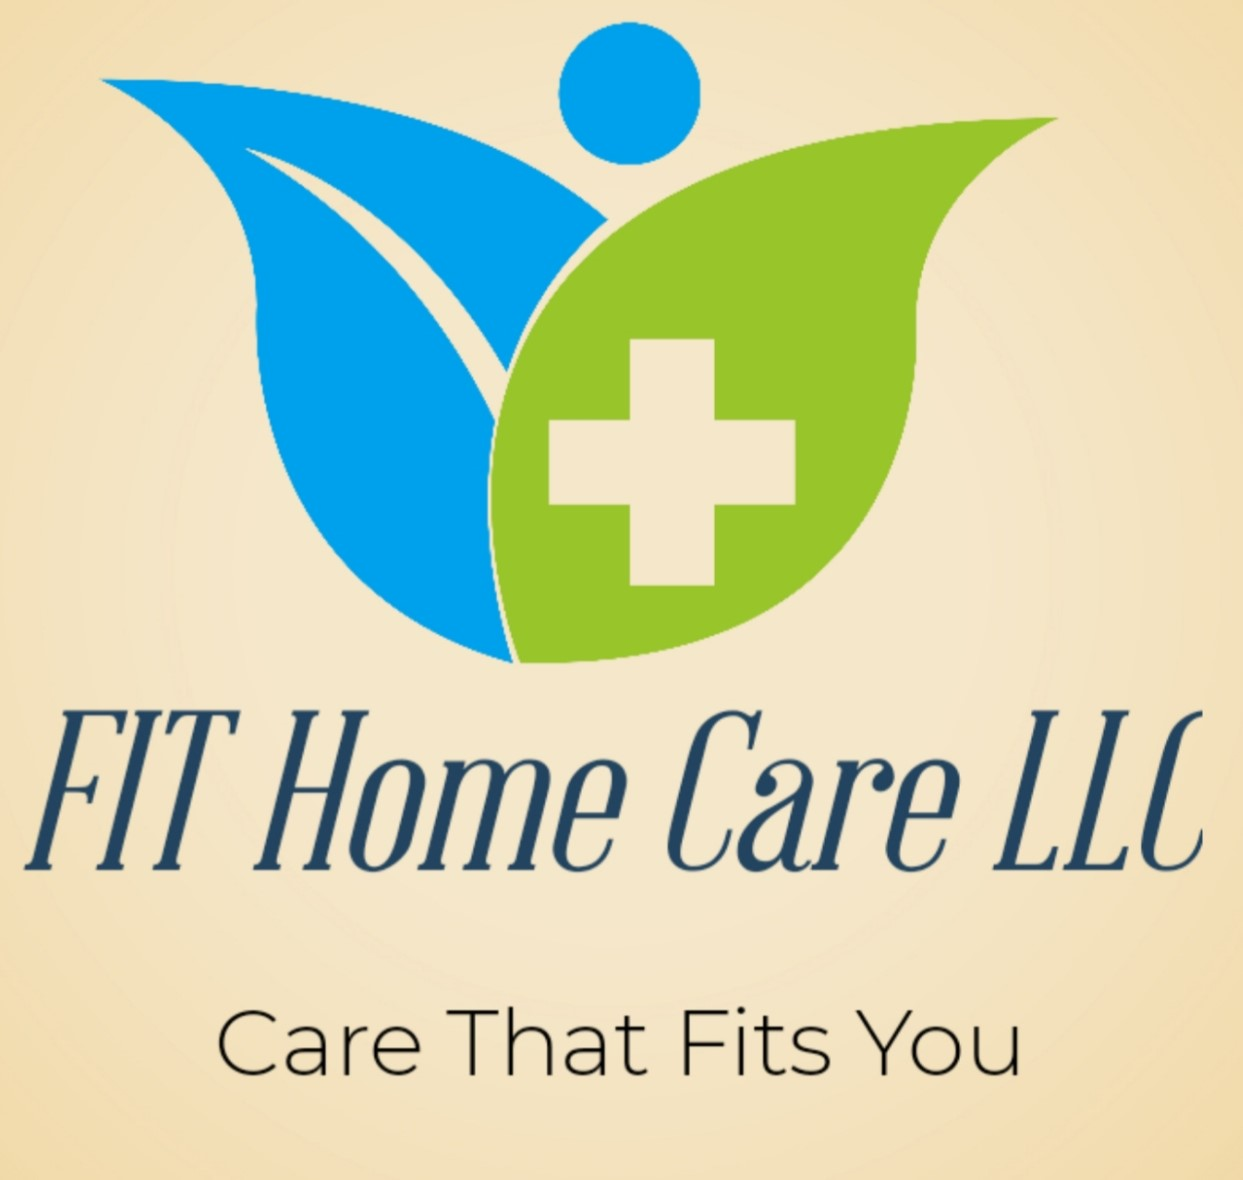 FIT Home Care LLC primary image